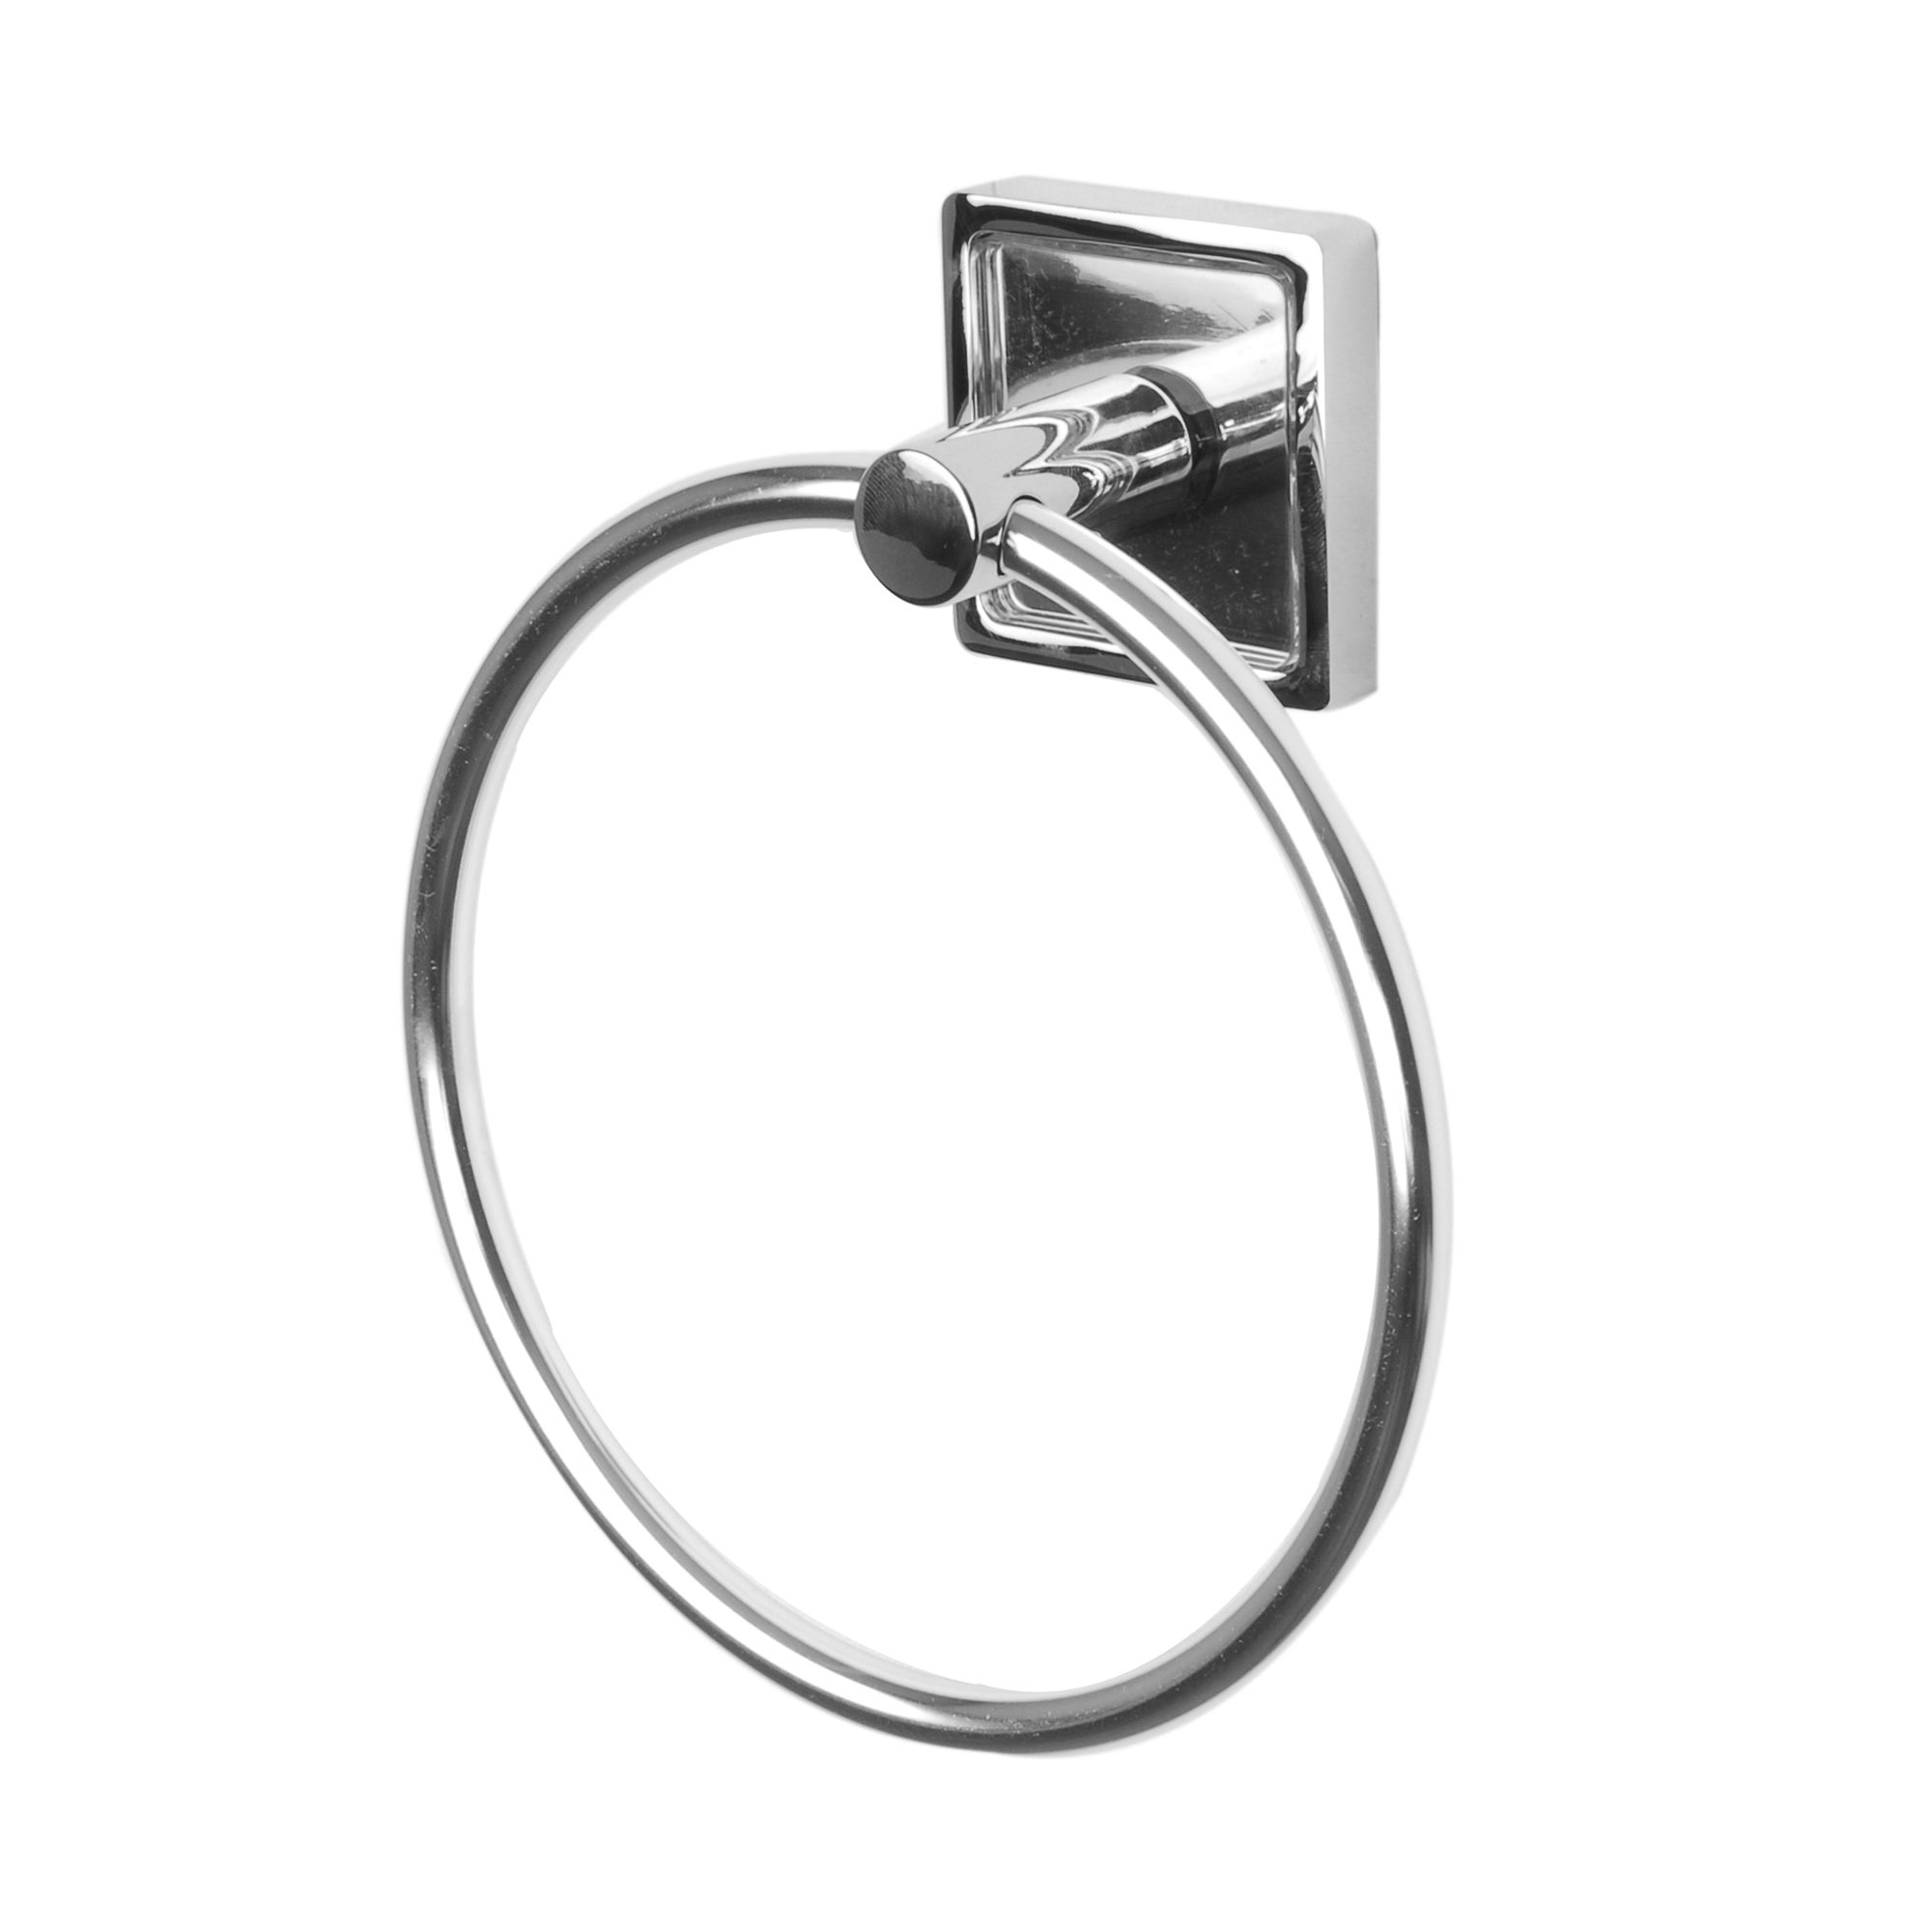 Toronto Collection Towel Ring